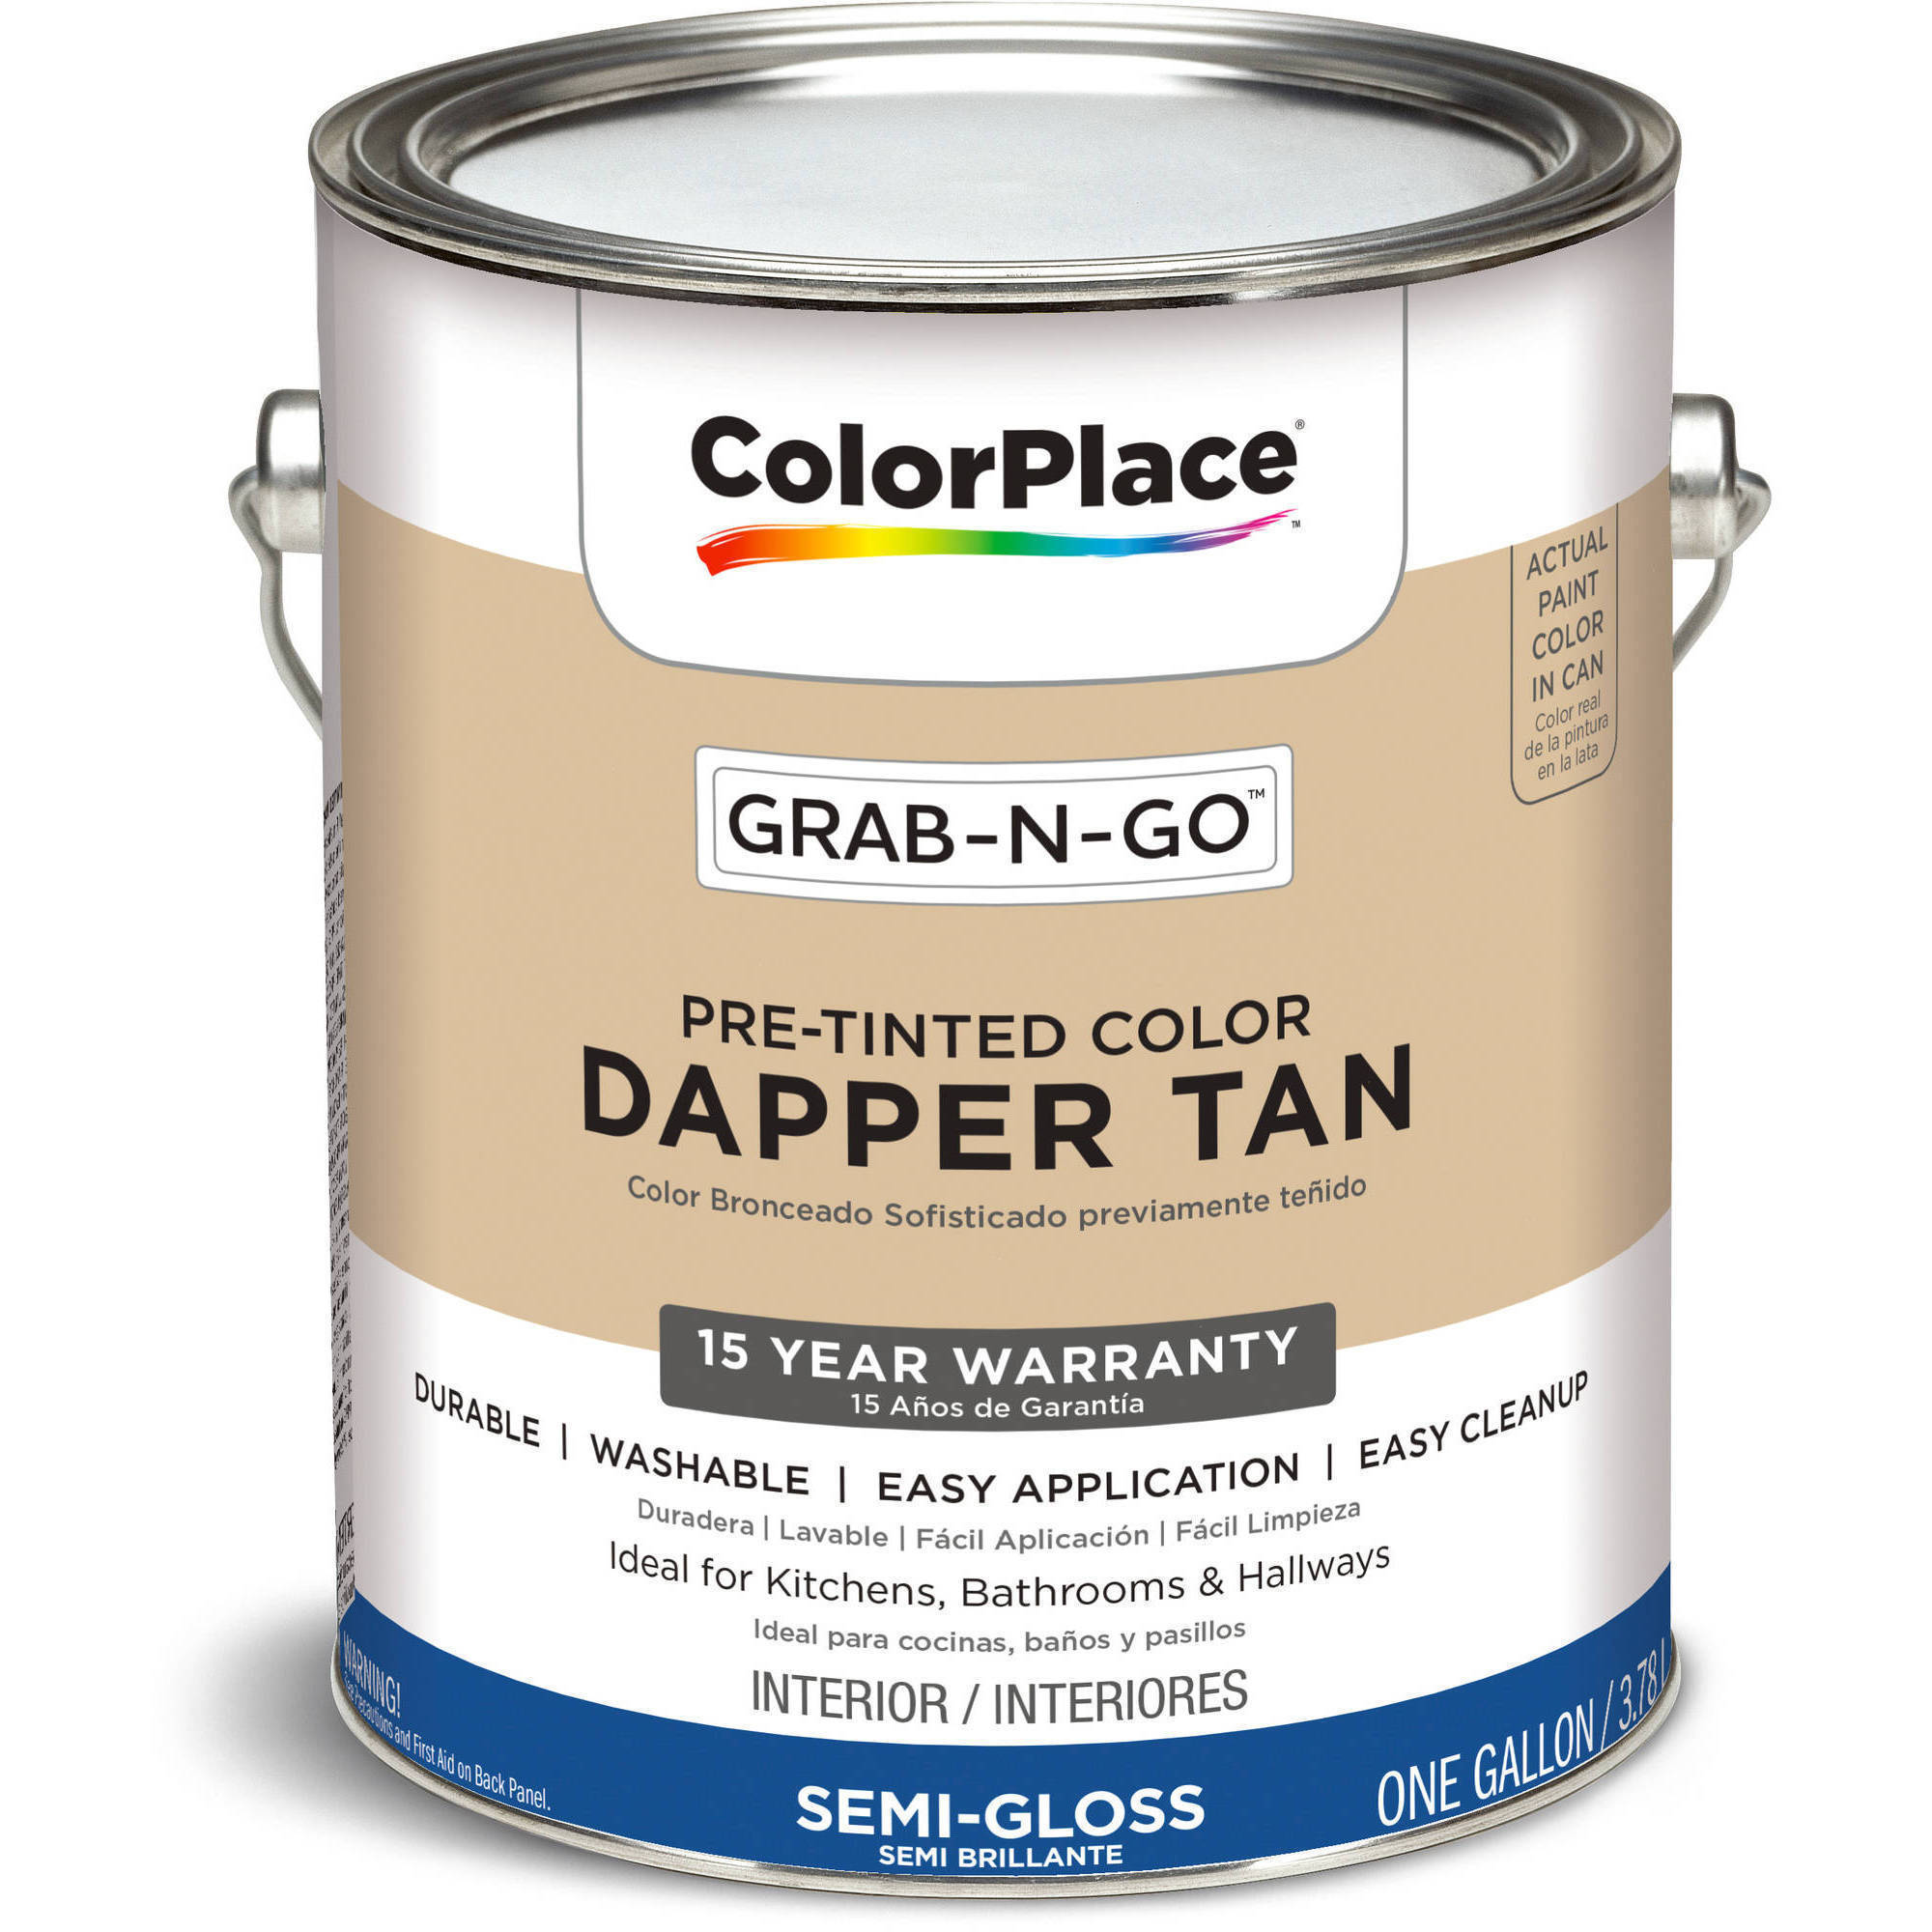 colorplace grab n go dapper tan semi gloss interior paint 1 gallon at tool realm. Black Bedroom Furniture Sets. Home Design Ideas